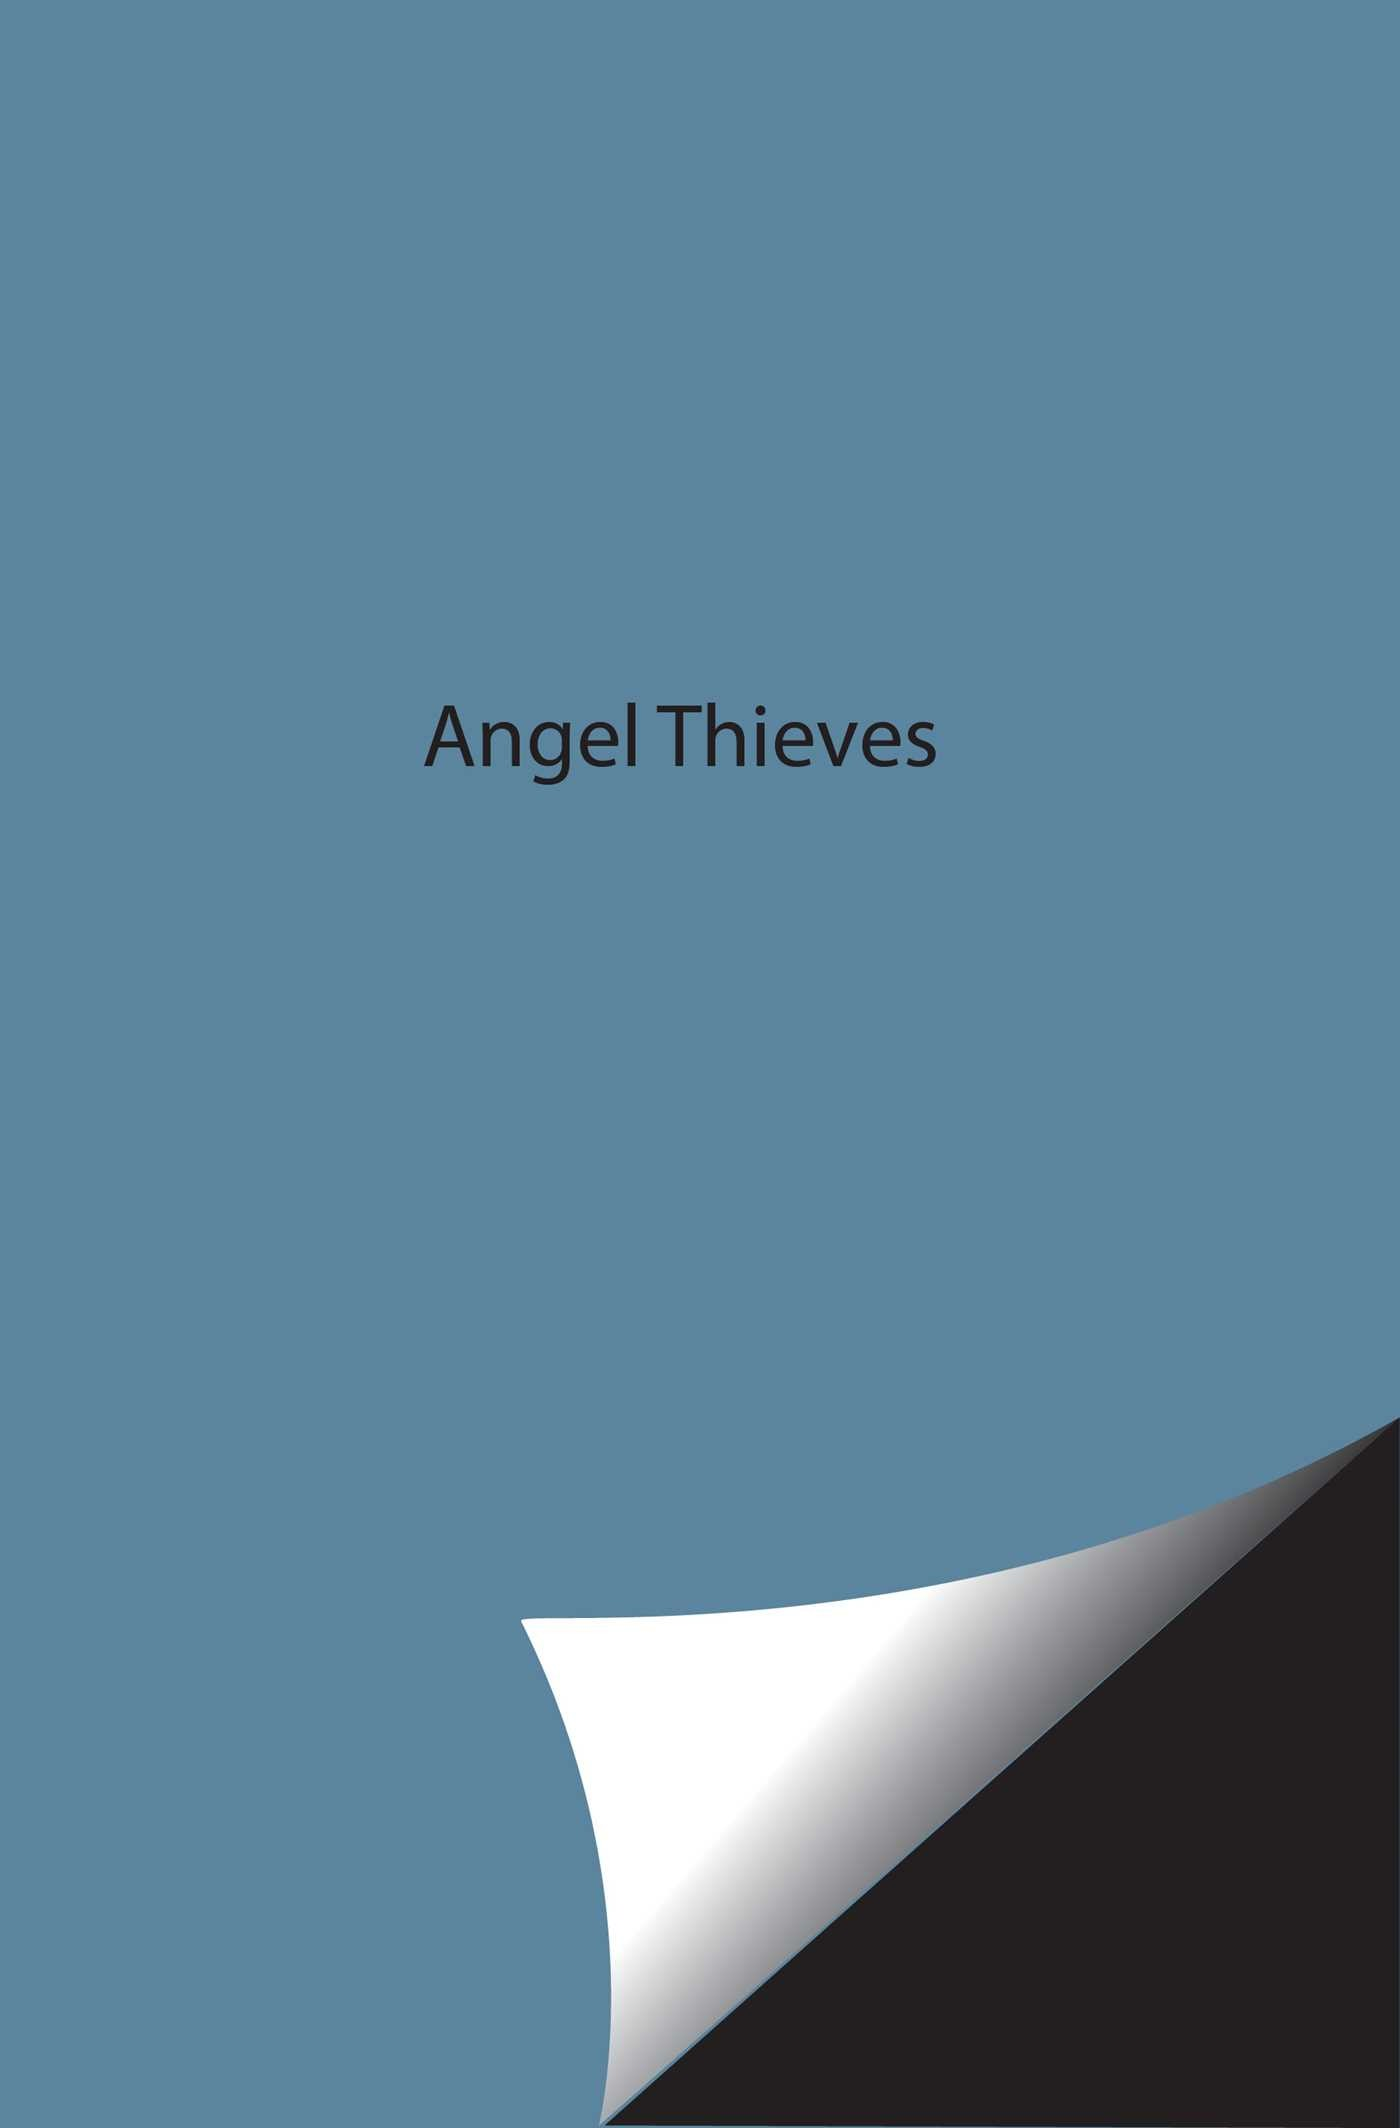 Angel thieves 9781442421097.in02